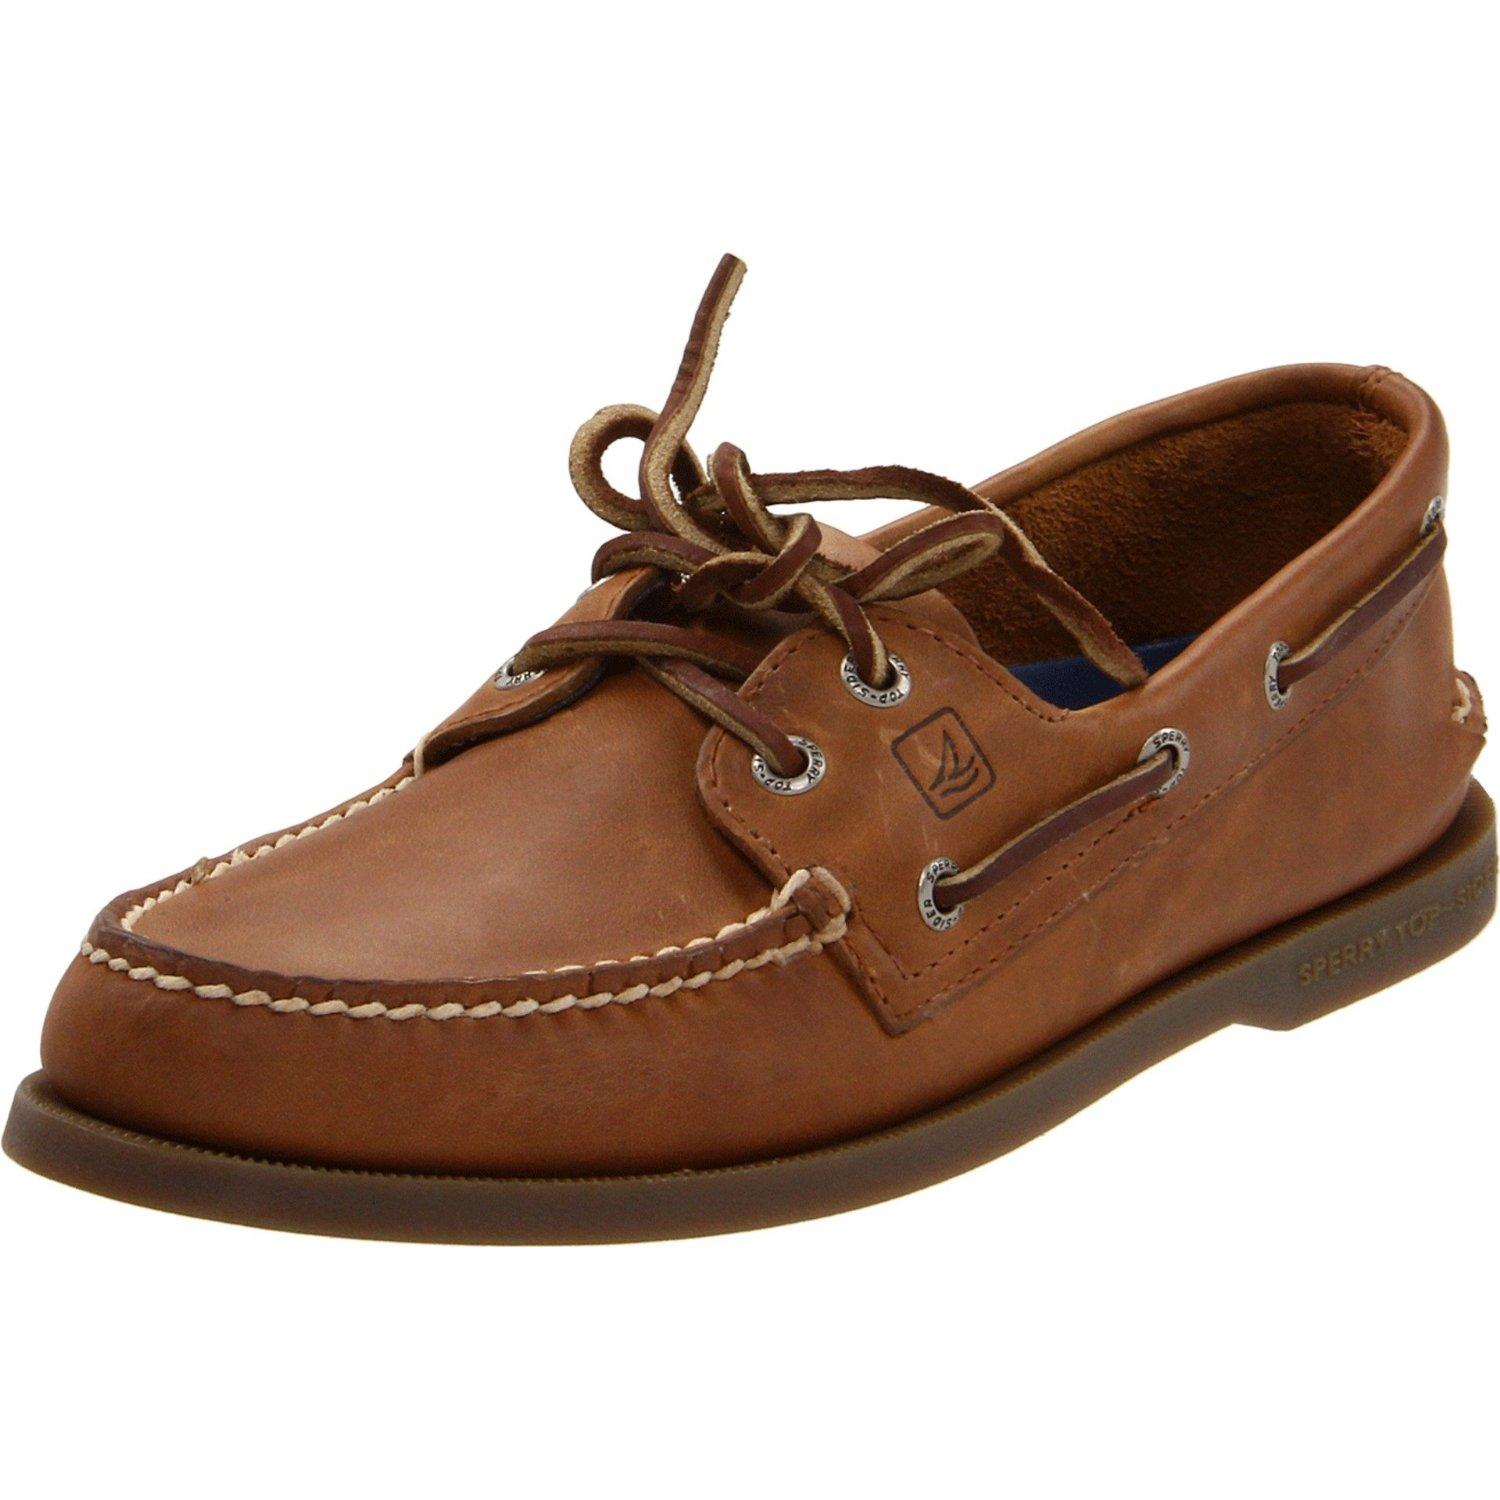 sperry top sider mens authentic original 2 eye boat shoe